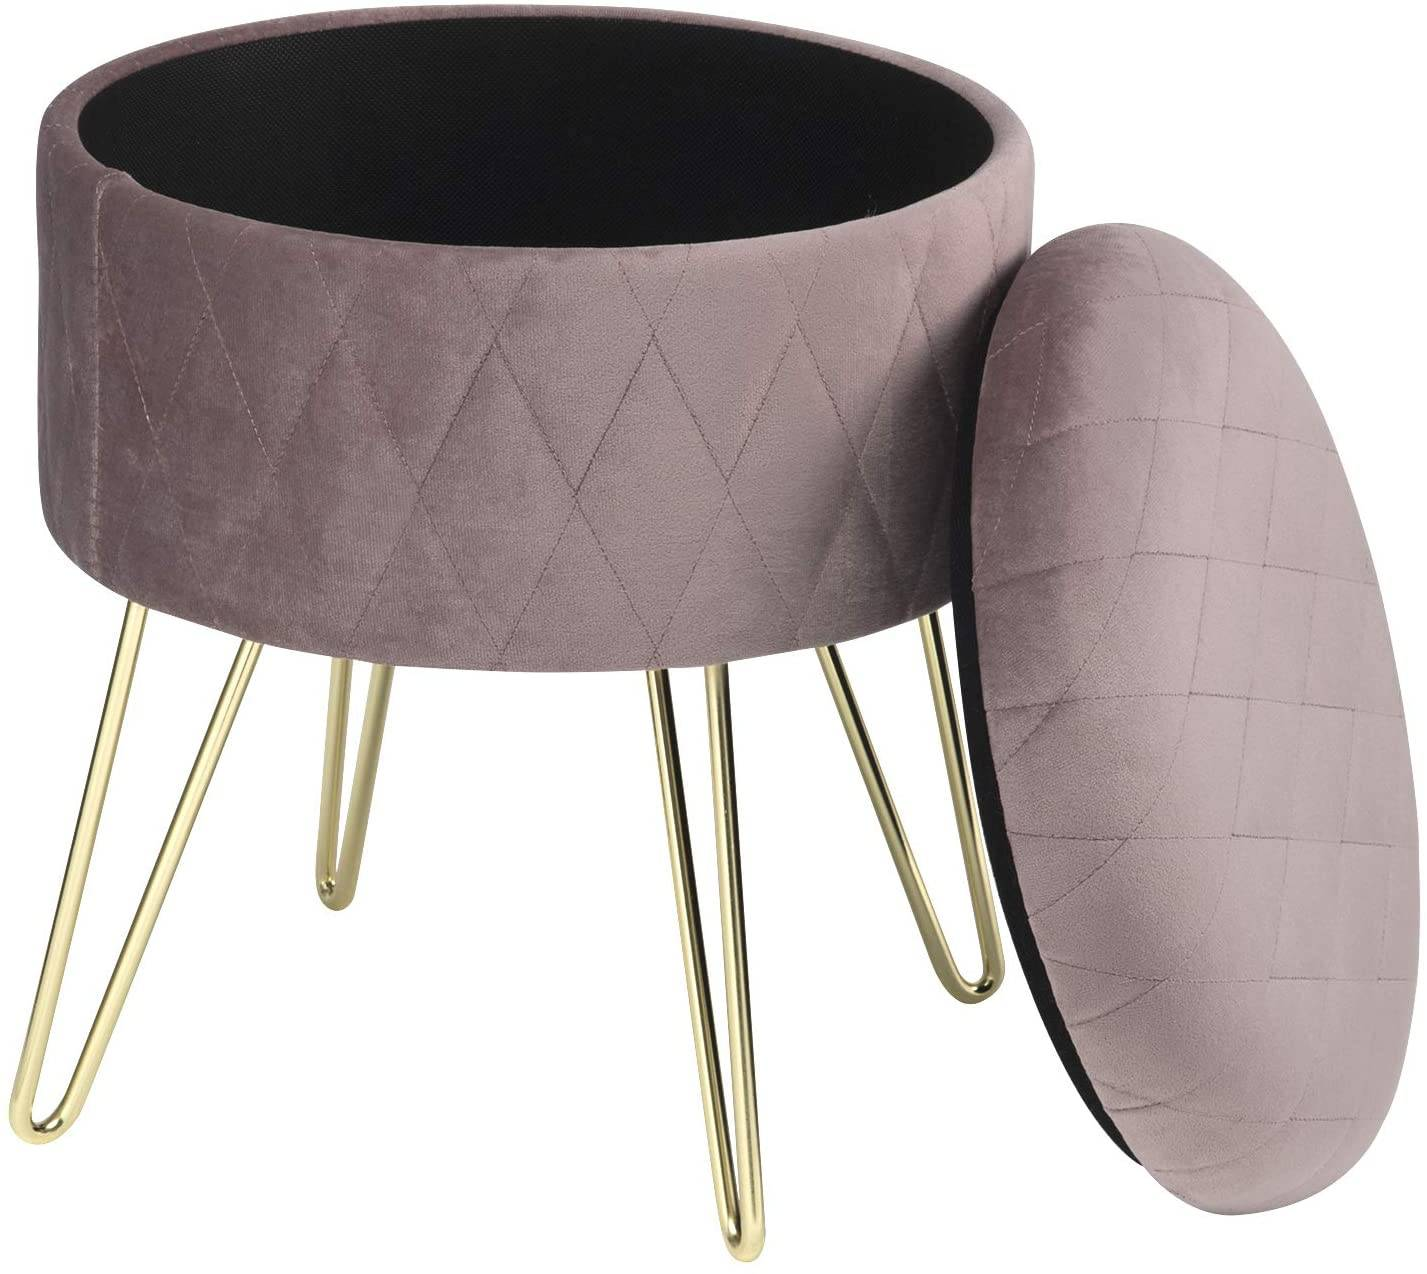 Polsterhocker Creme Upholstered Stool With Storage Space Made Of Velvet, Round | Woltu.eu